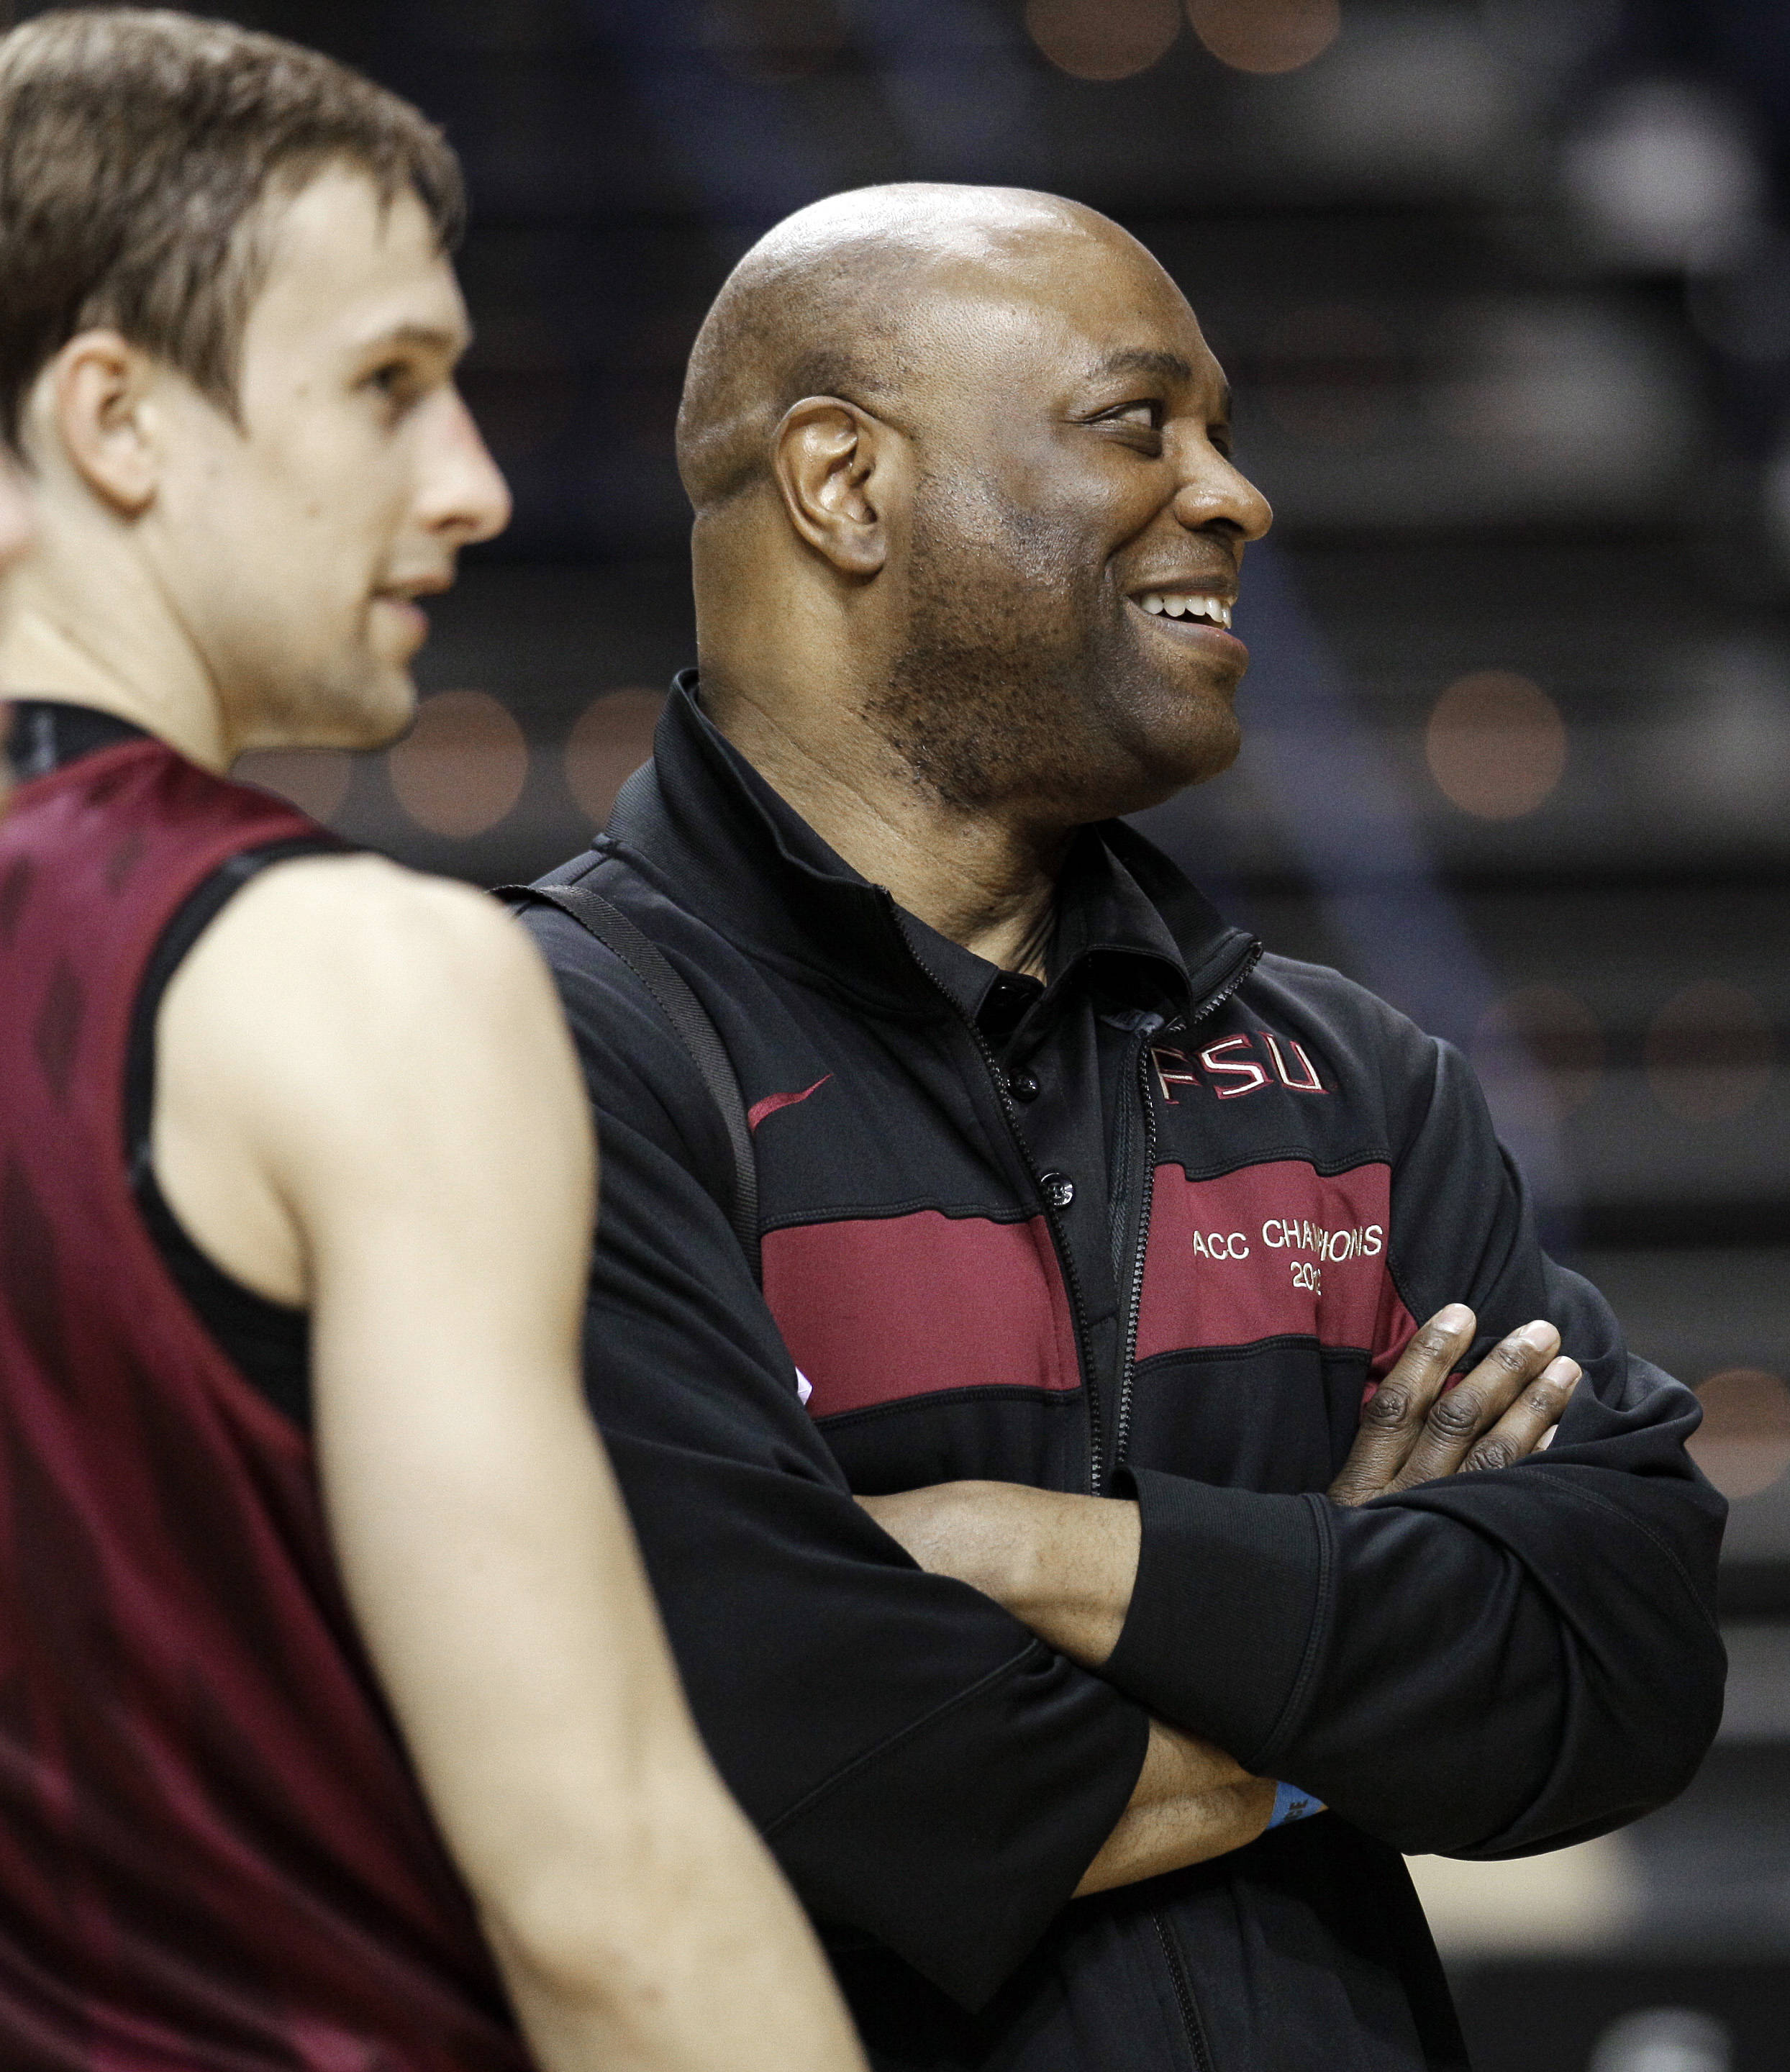 Florida State head coach Leonard Hamilton, right, watches his players alongside guard Deividas Dulkys during practice for an NCAA college basketball tournament game on Thursday, March 15, 2012, in Nashville, Tenn. Florida State is scheduled to play St. Bonaventure on Friday. (AP Photo/Mark Humphrey)